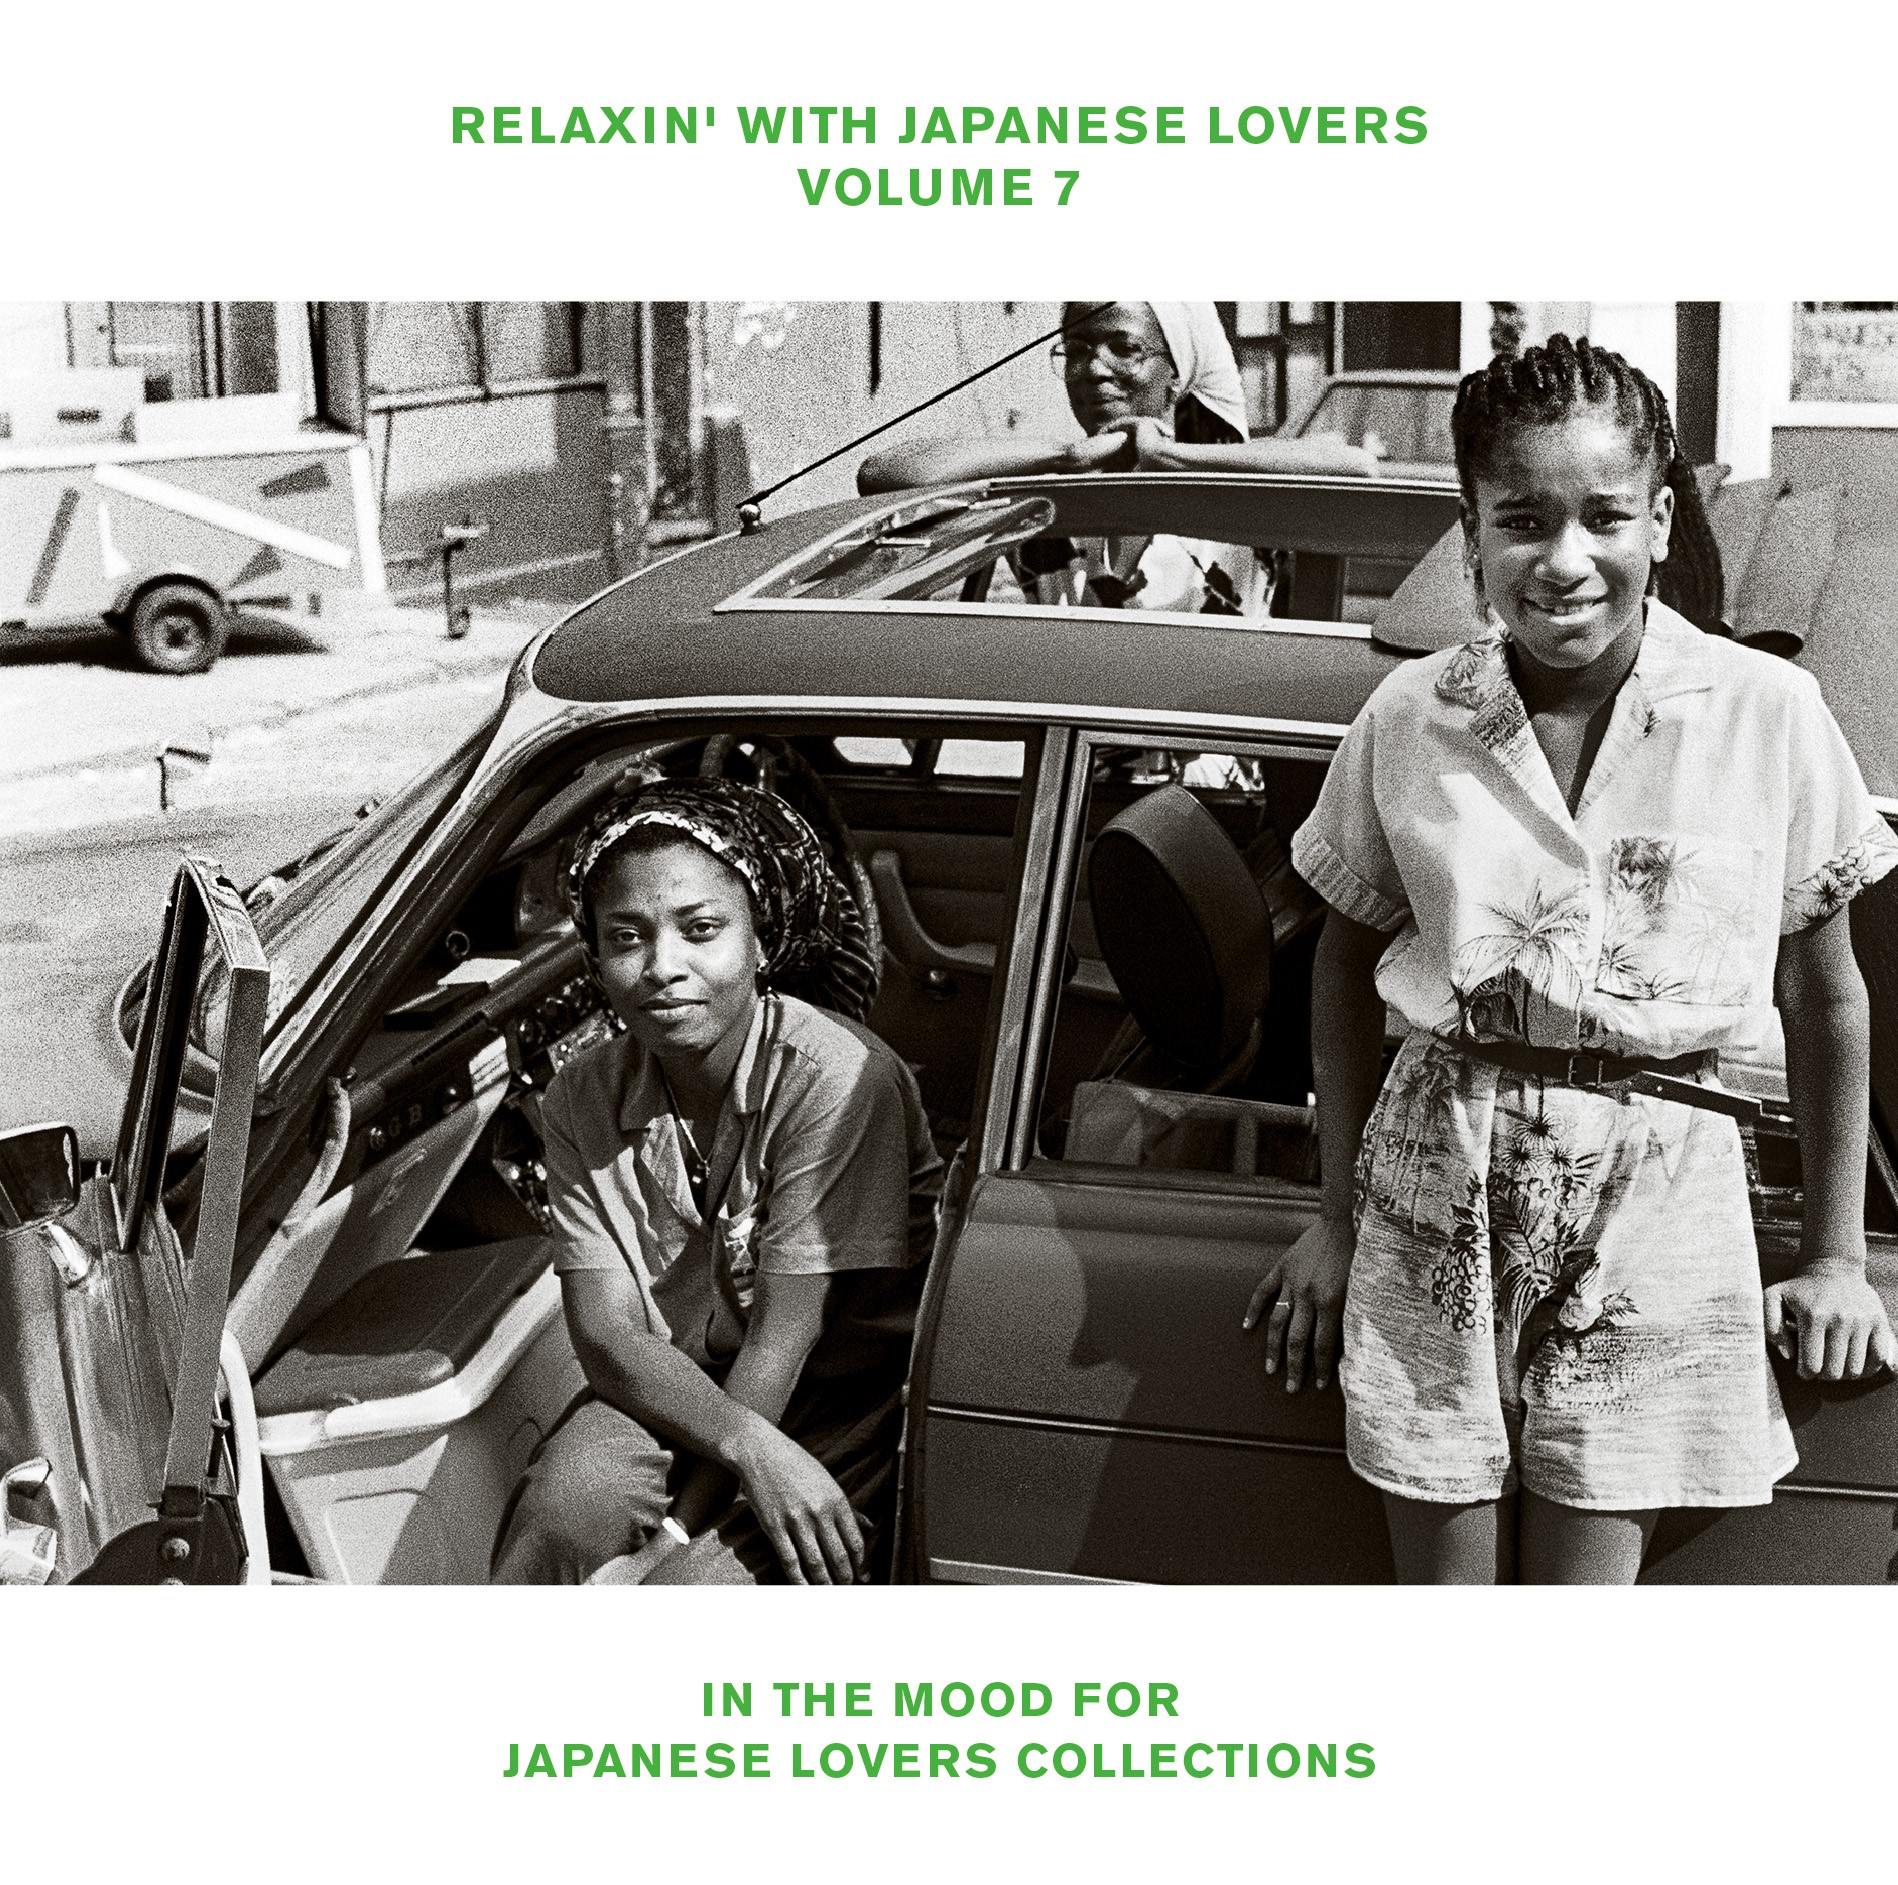 RELAXIN' WITH JAPANESE LOVERS VOLUME 7